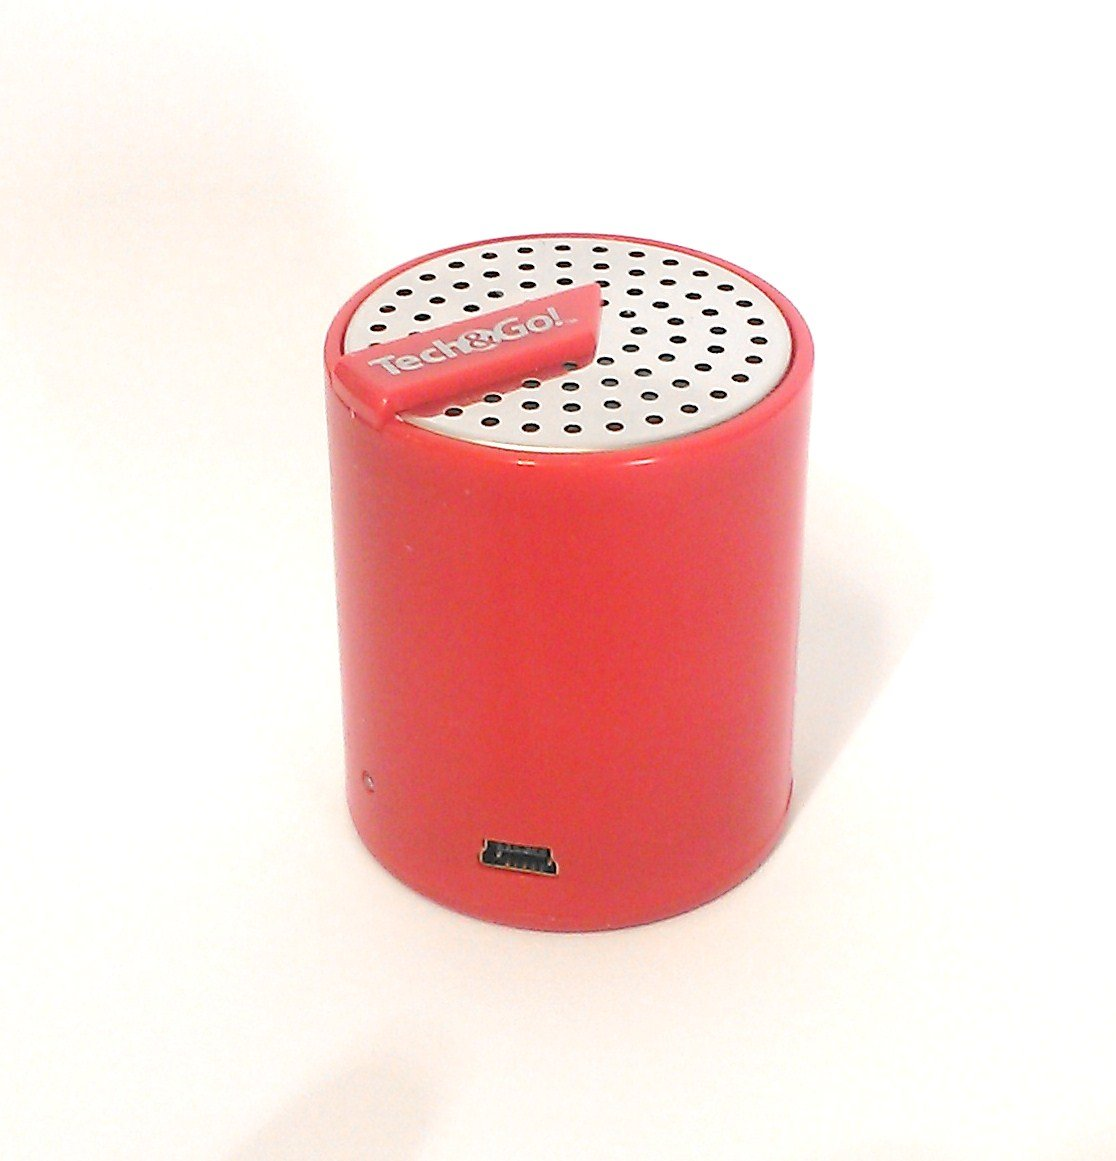 Tech and Go Rechargeable Micro Mini Portable Speaker